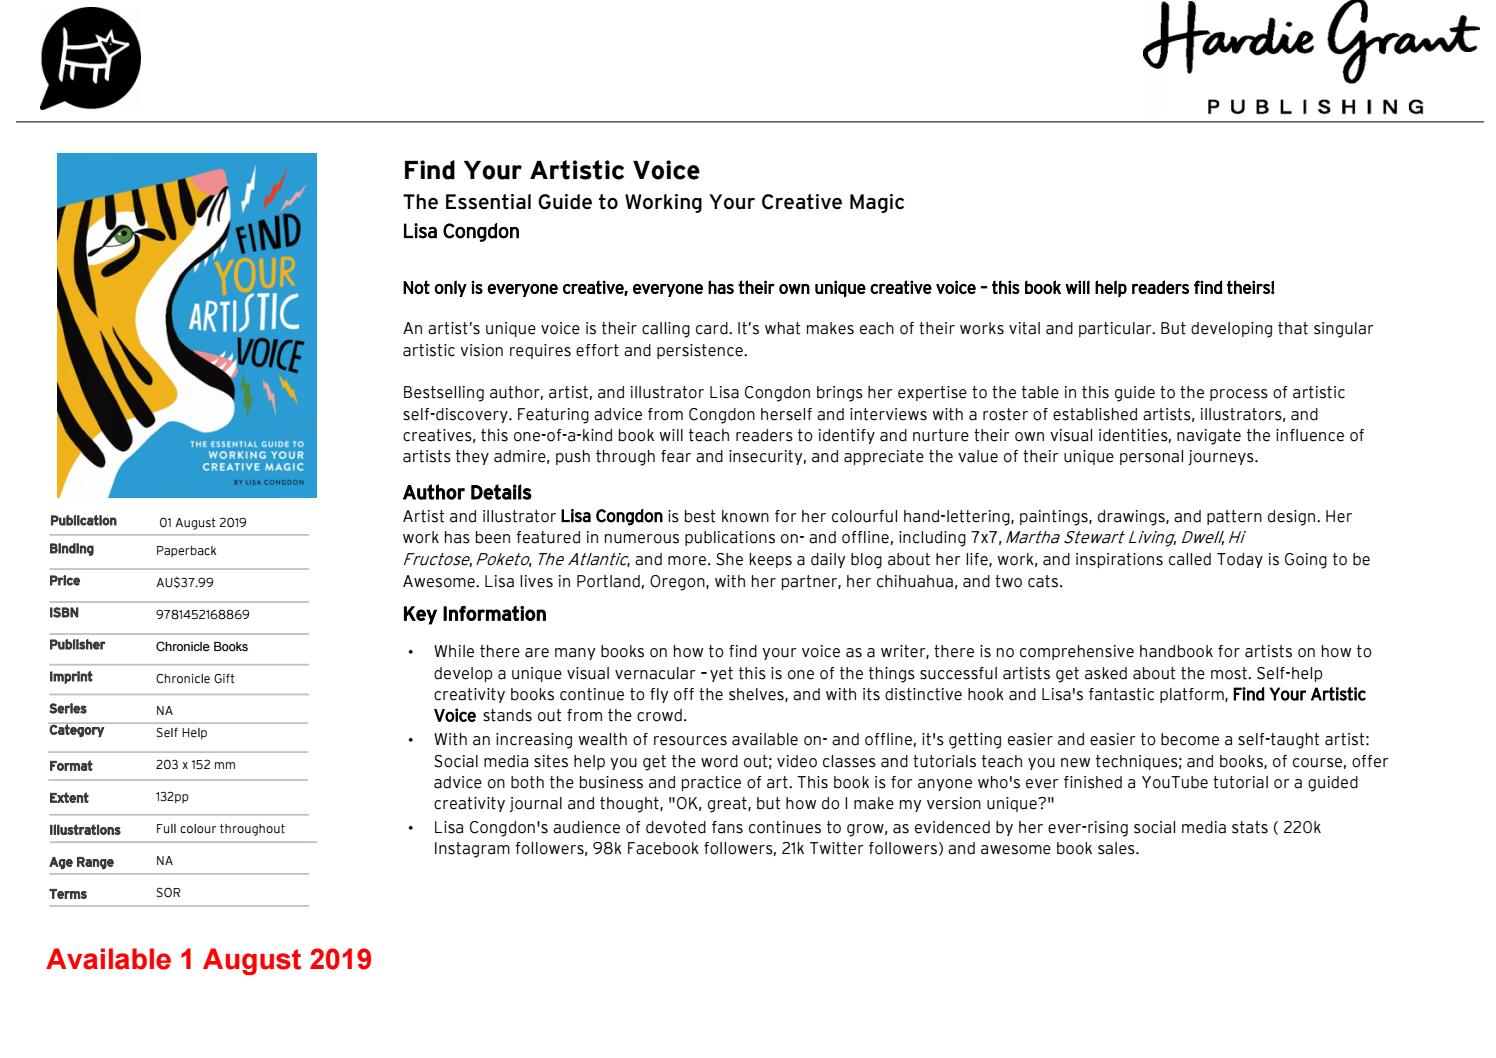 HGBooks Part 2 September Kit 2019 by Hardie Grant Publishing